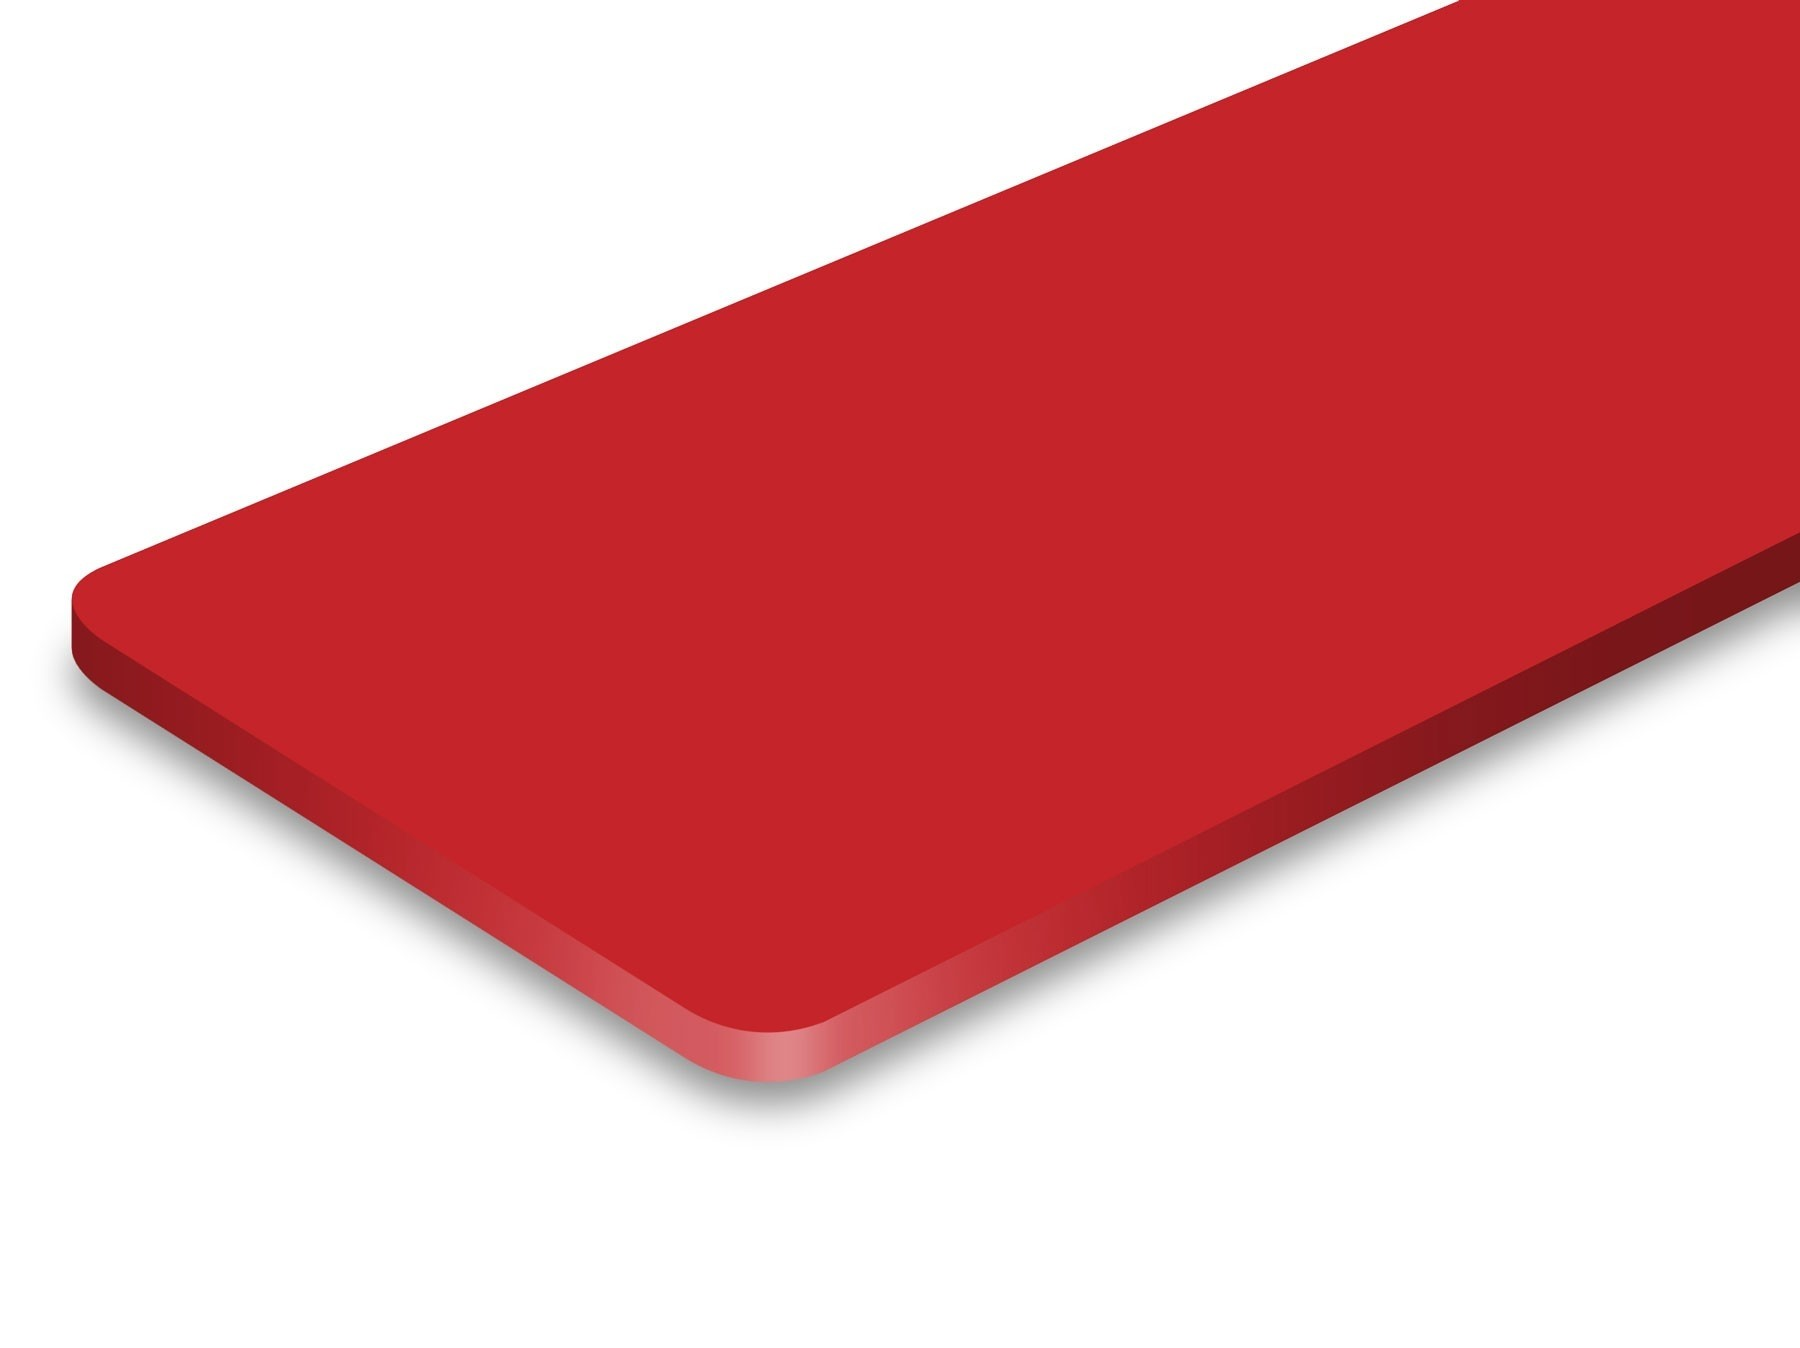 TroLase ADA Signage, Red, 1ply, 0.8 mm